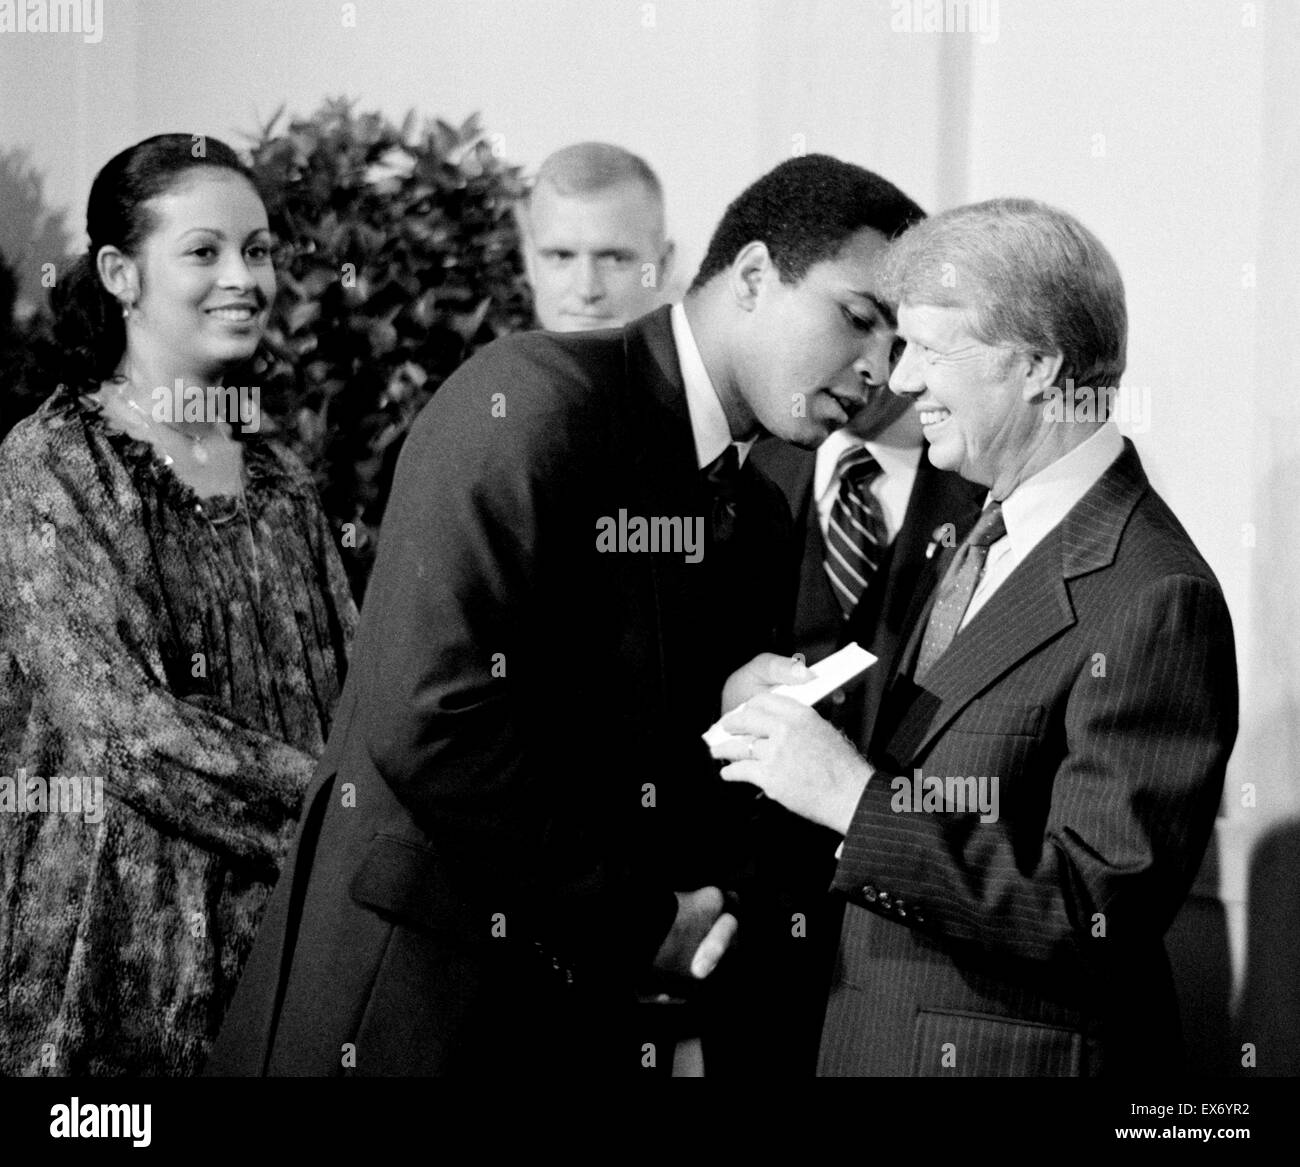 President Jimmy Carter greets Muhammad Ali at a White House dinner celebrating the signing of the Panama Canal Treaty, - Stock Image